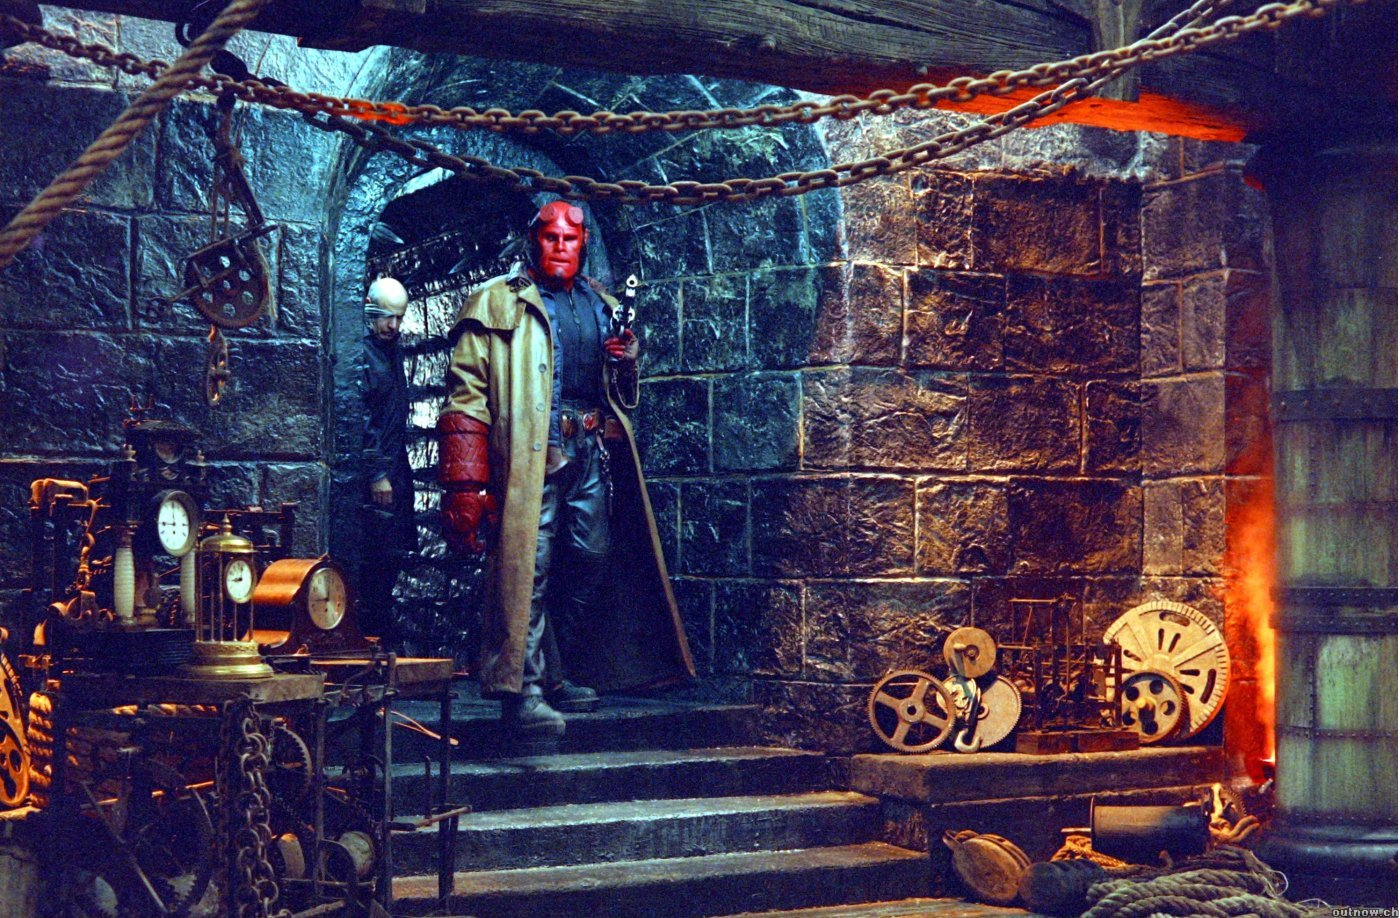 2004's 'Hellboy' has a straightforward plotline.